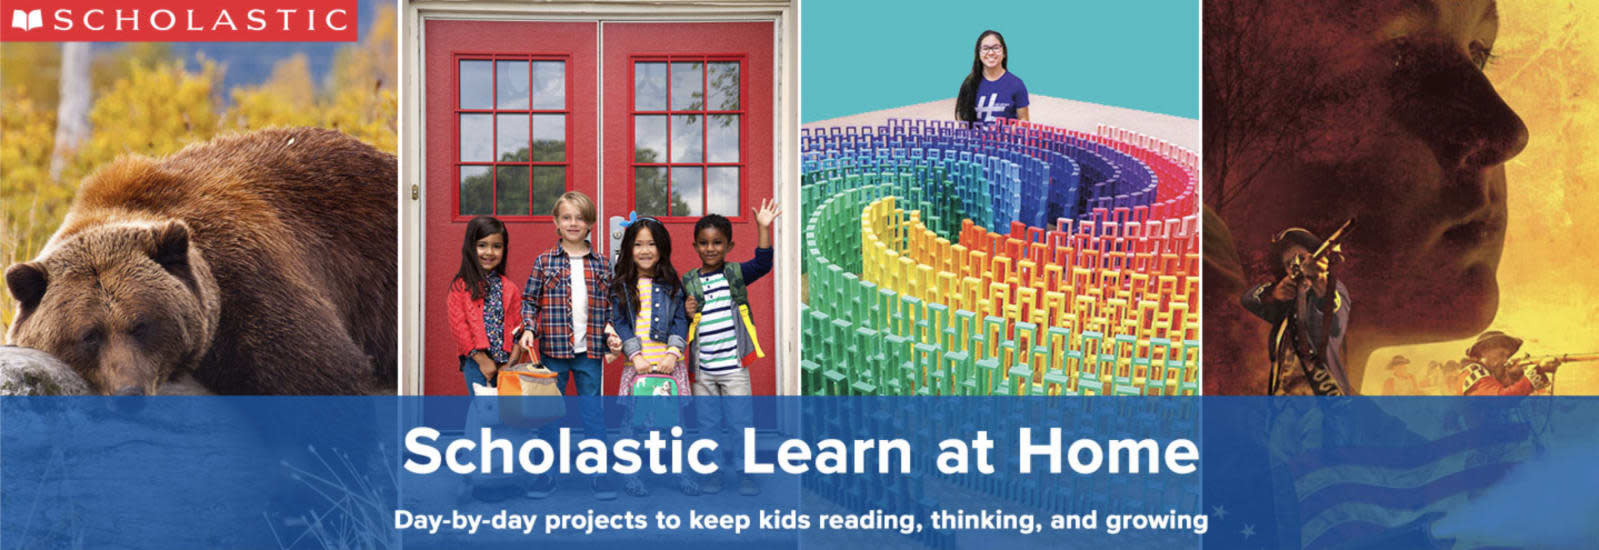 Scholastic Learn at Home